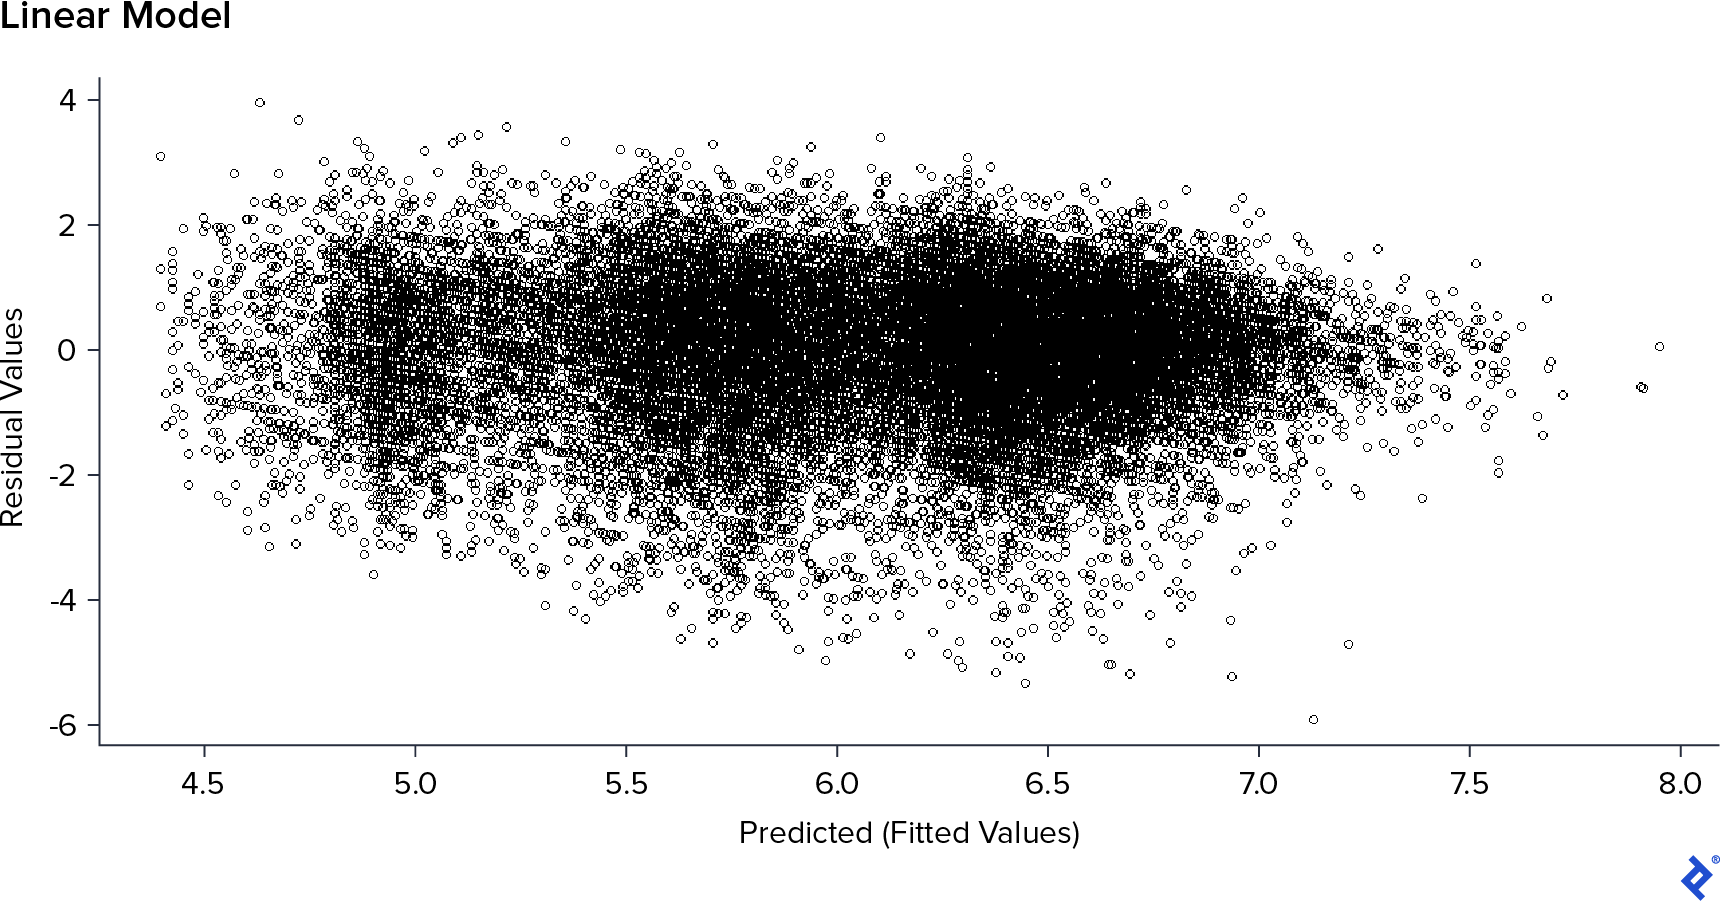 Residual vs. predicted values scatterplot when the Votes field is removed.